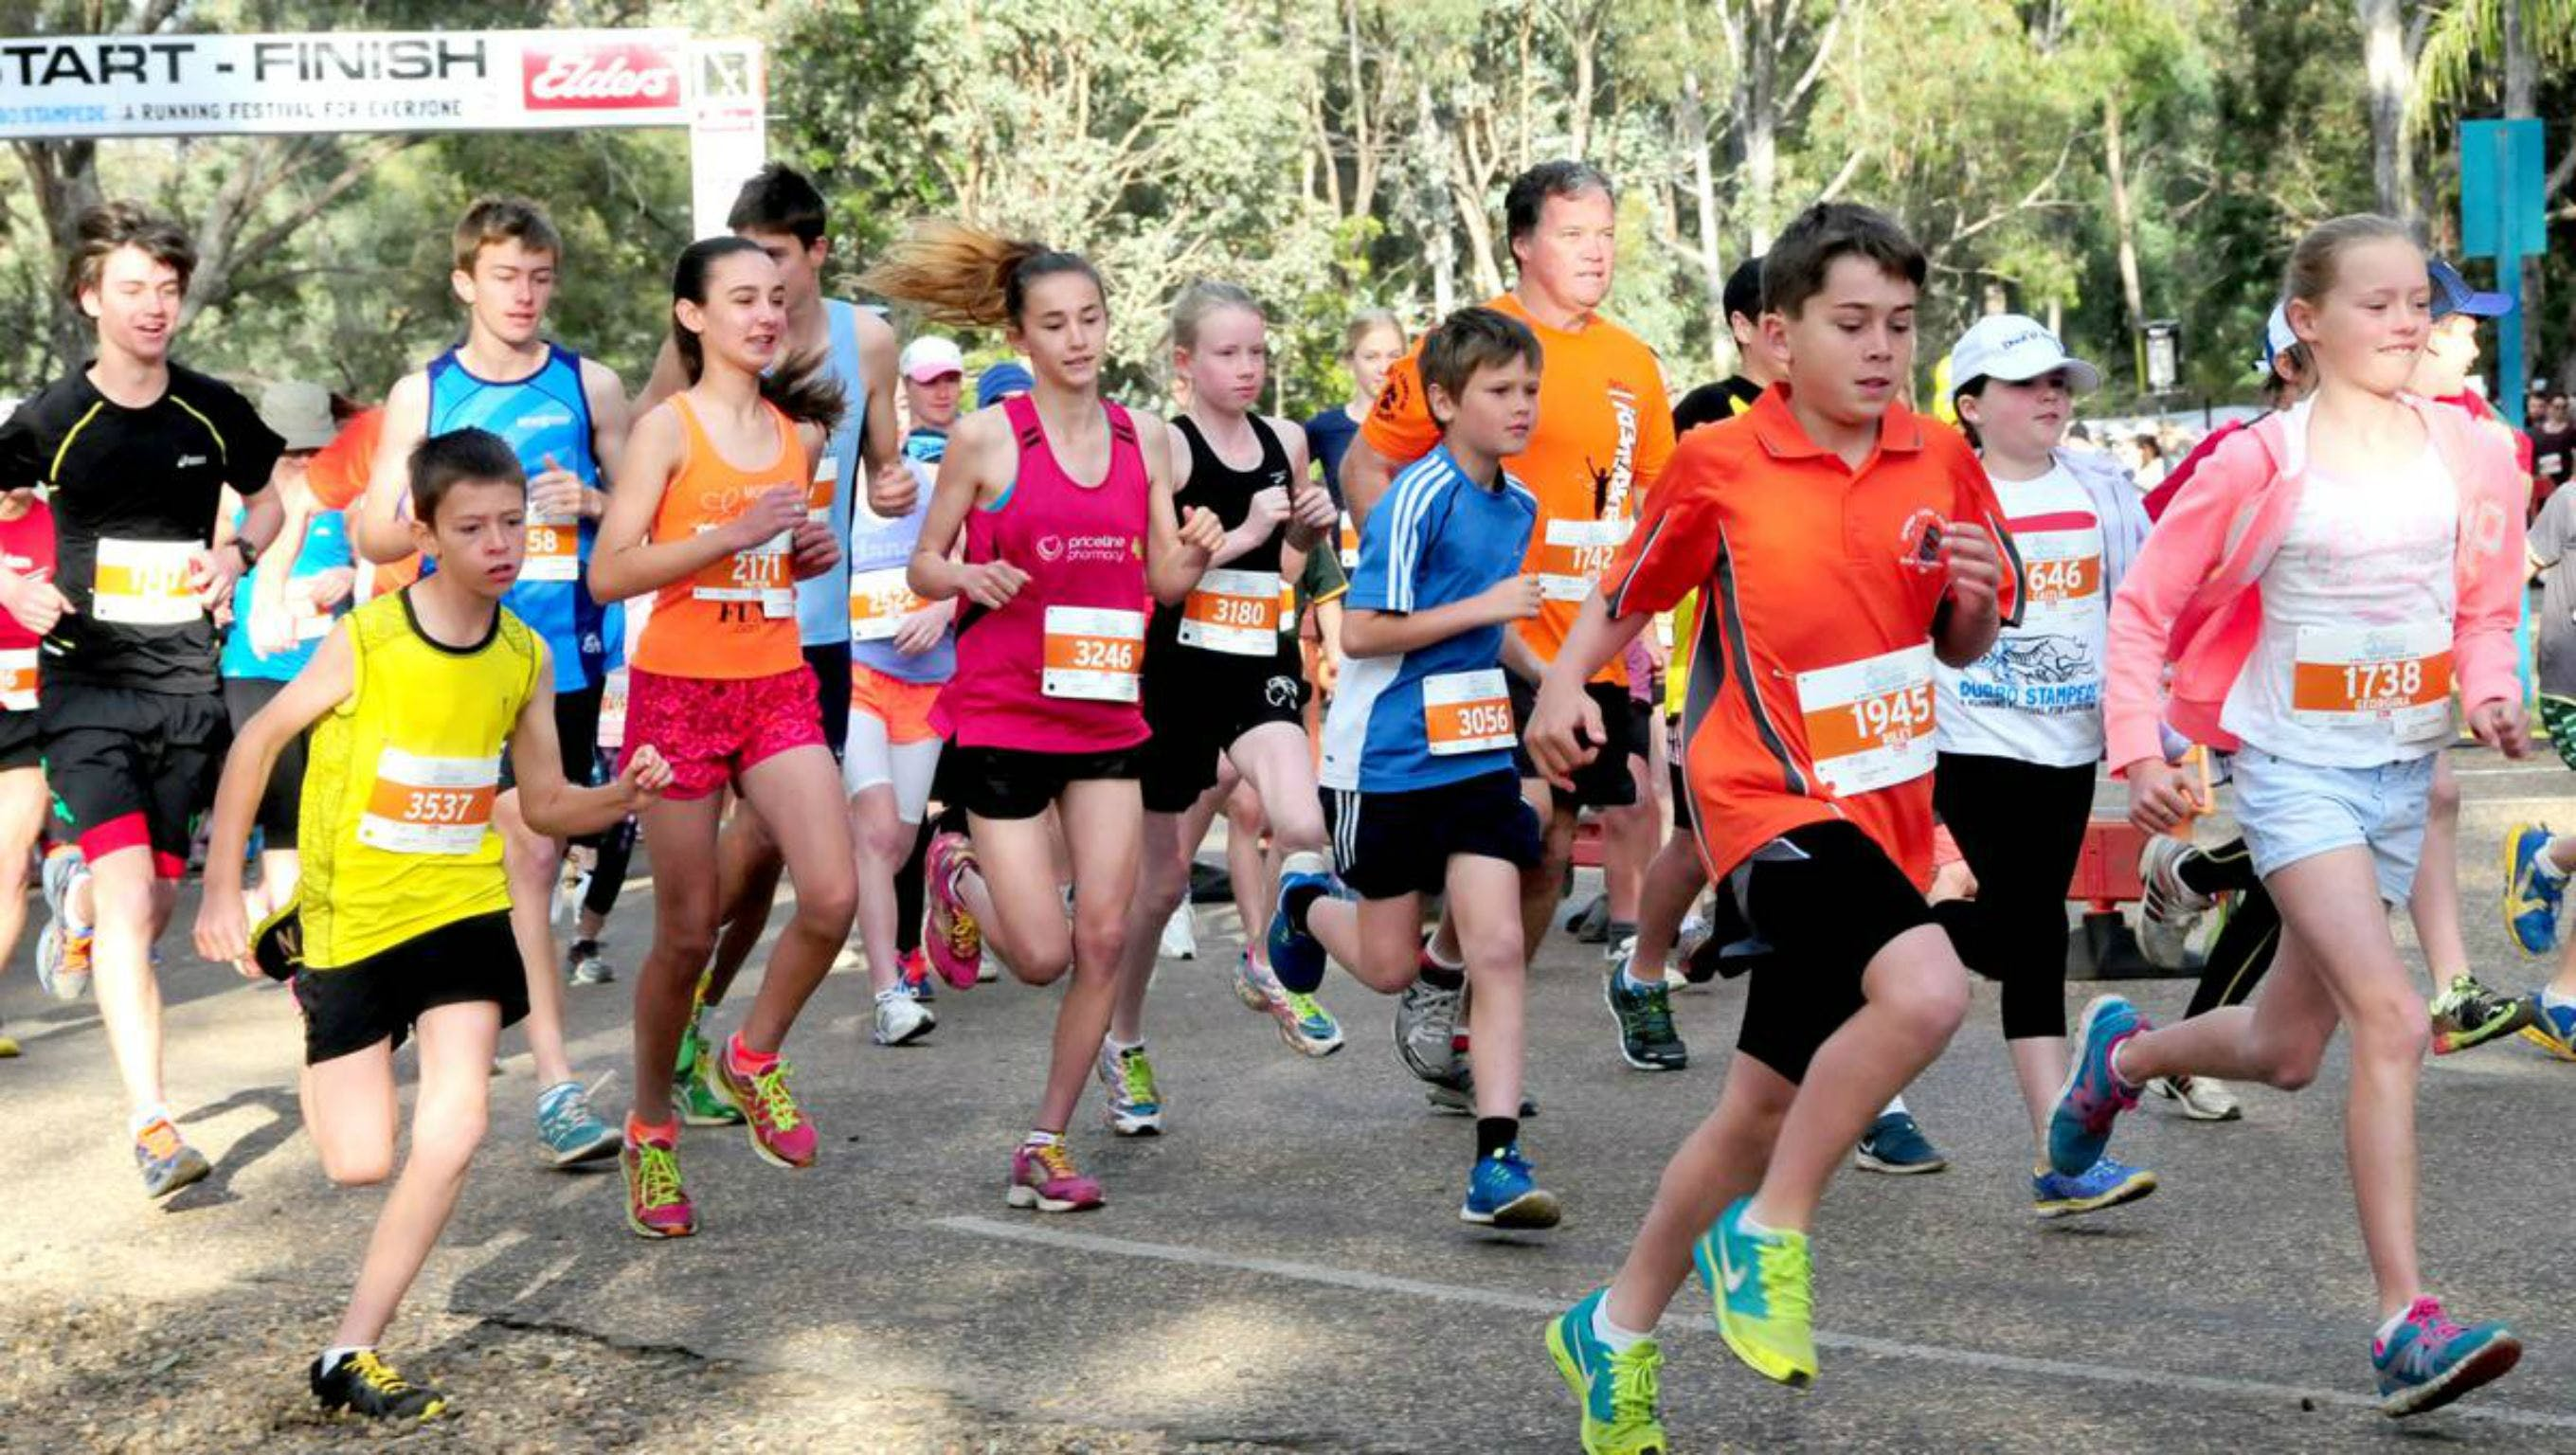 MAAS Group Dubbo Stampede Running Festival - WA Accommodation